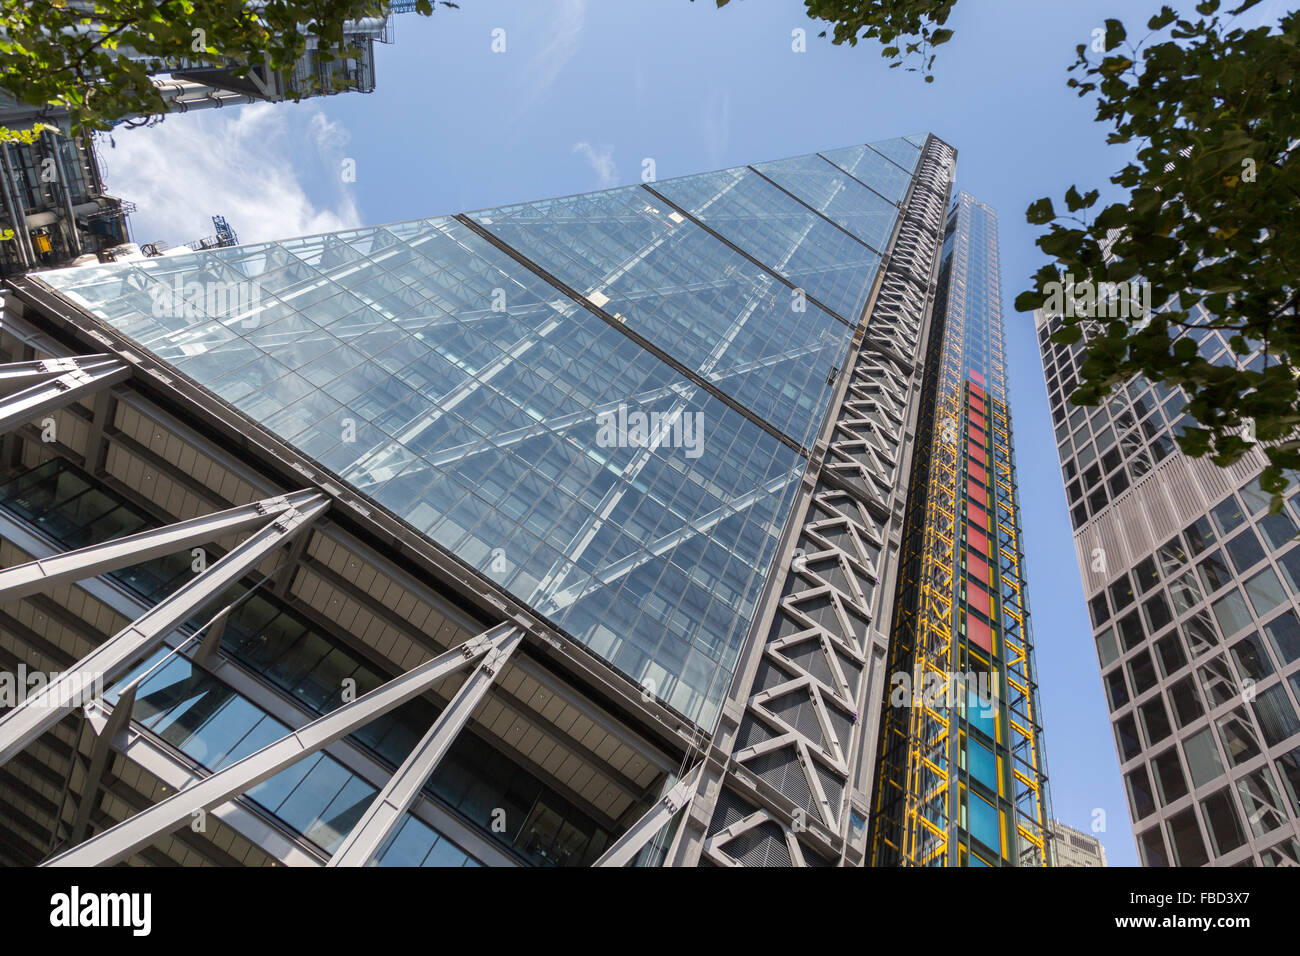 122 Leadenhall Street, London, United Kingdom - Stock Image